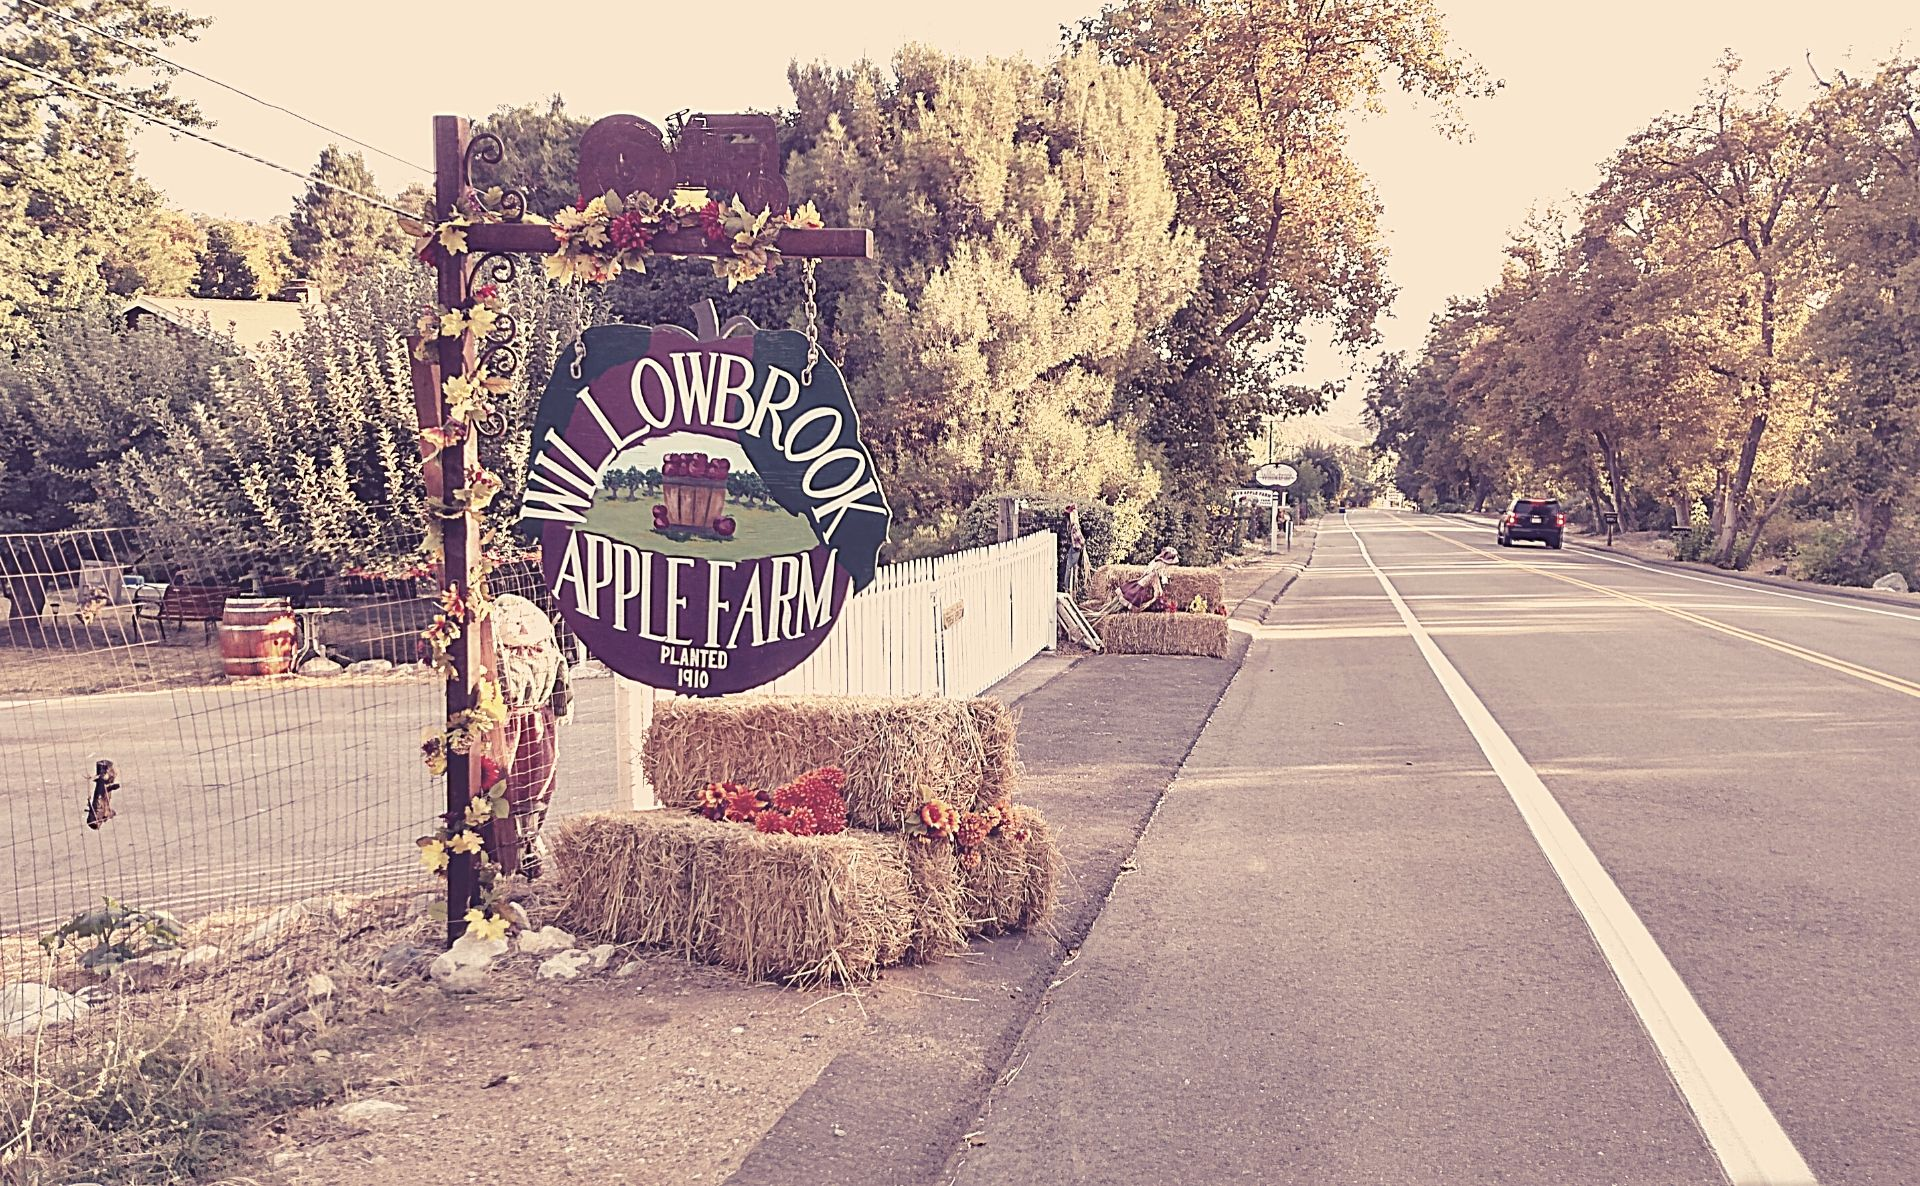 Willowbrook Apple Farm road-side sign above haybales